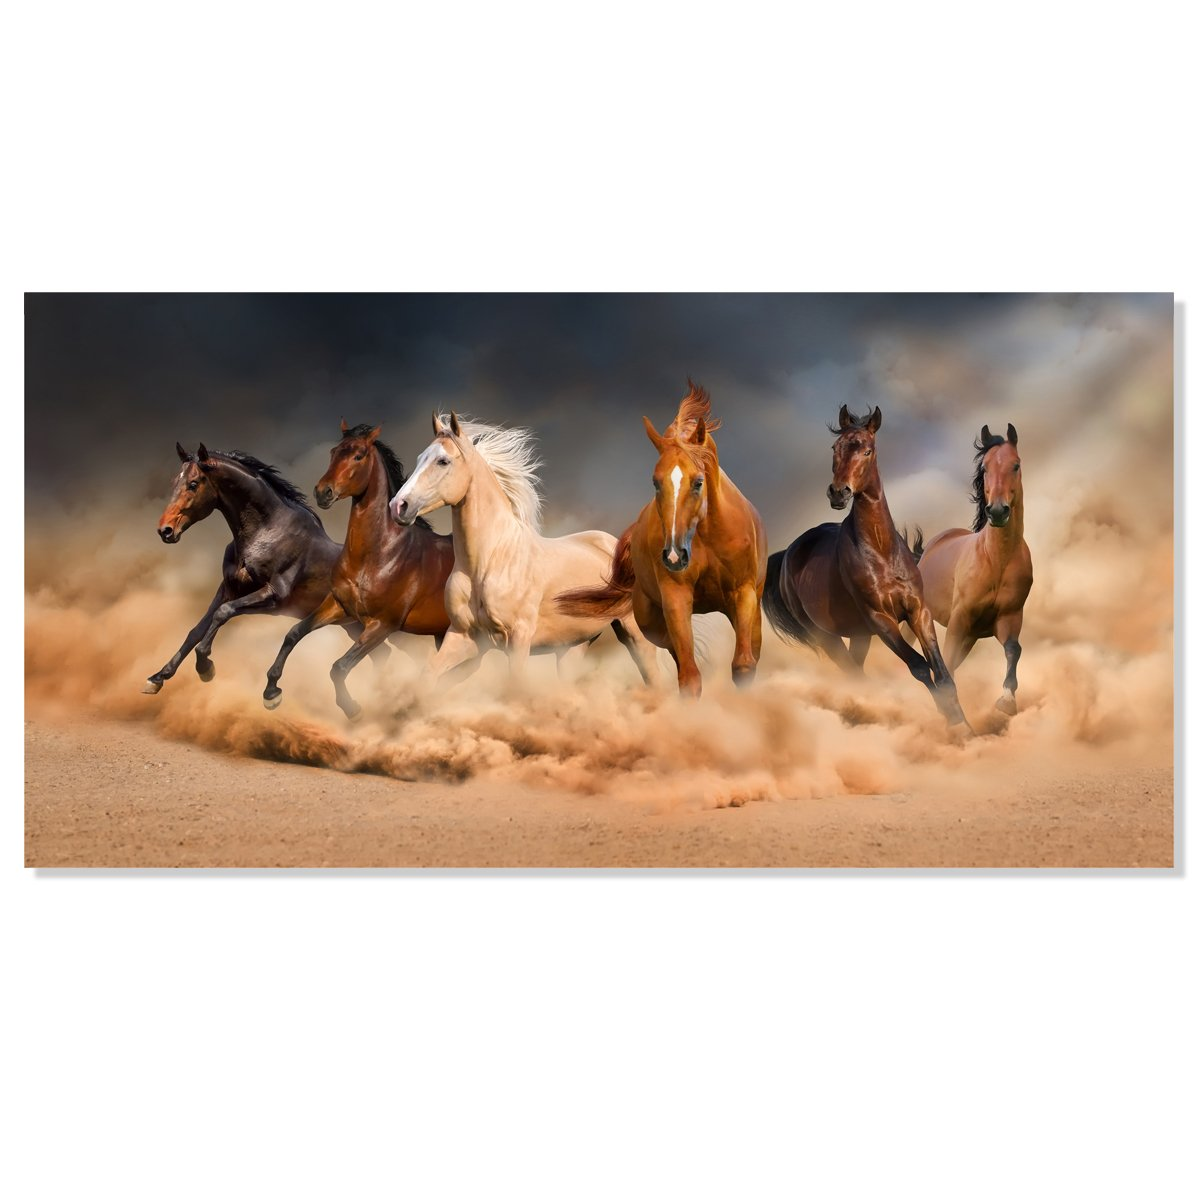 Large Size Running Horse Art Picture Modern African Landscape Wild Animal High Definition Print Painting for Hotel Wall Decor (No Frame(only Canvas) 36x72 inch)